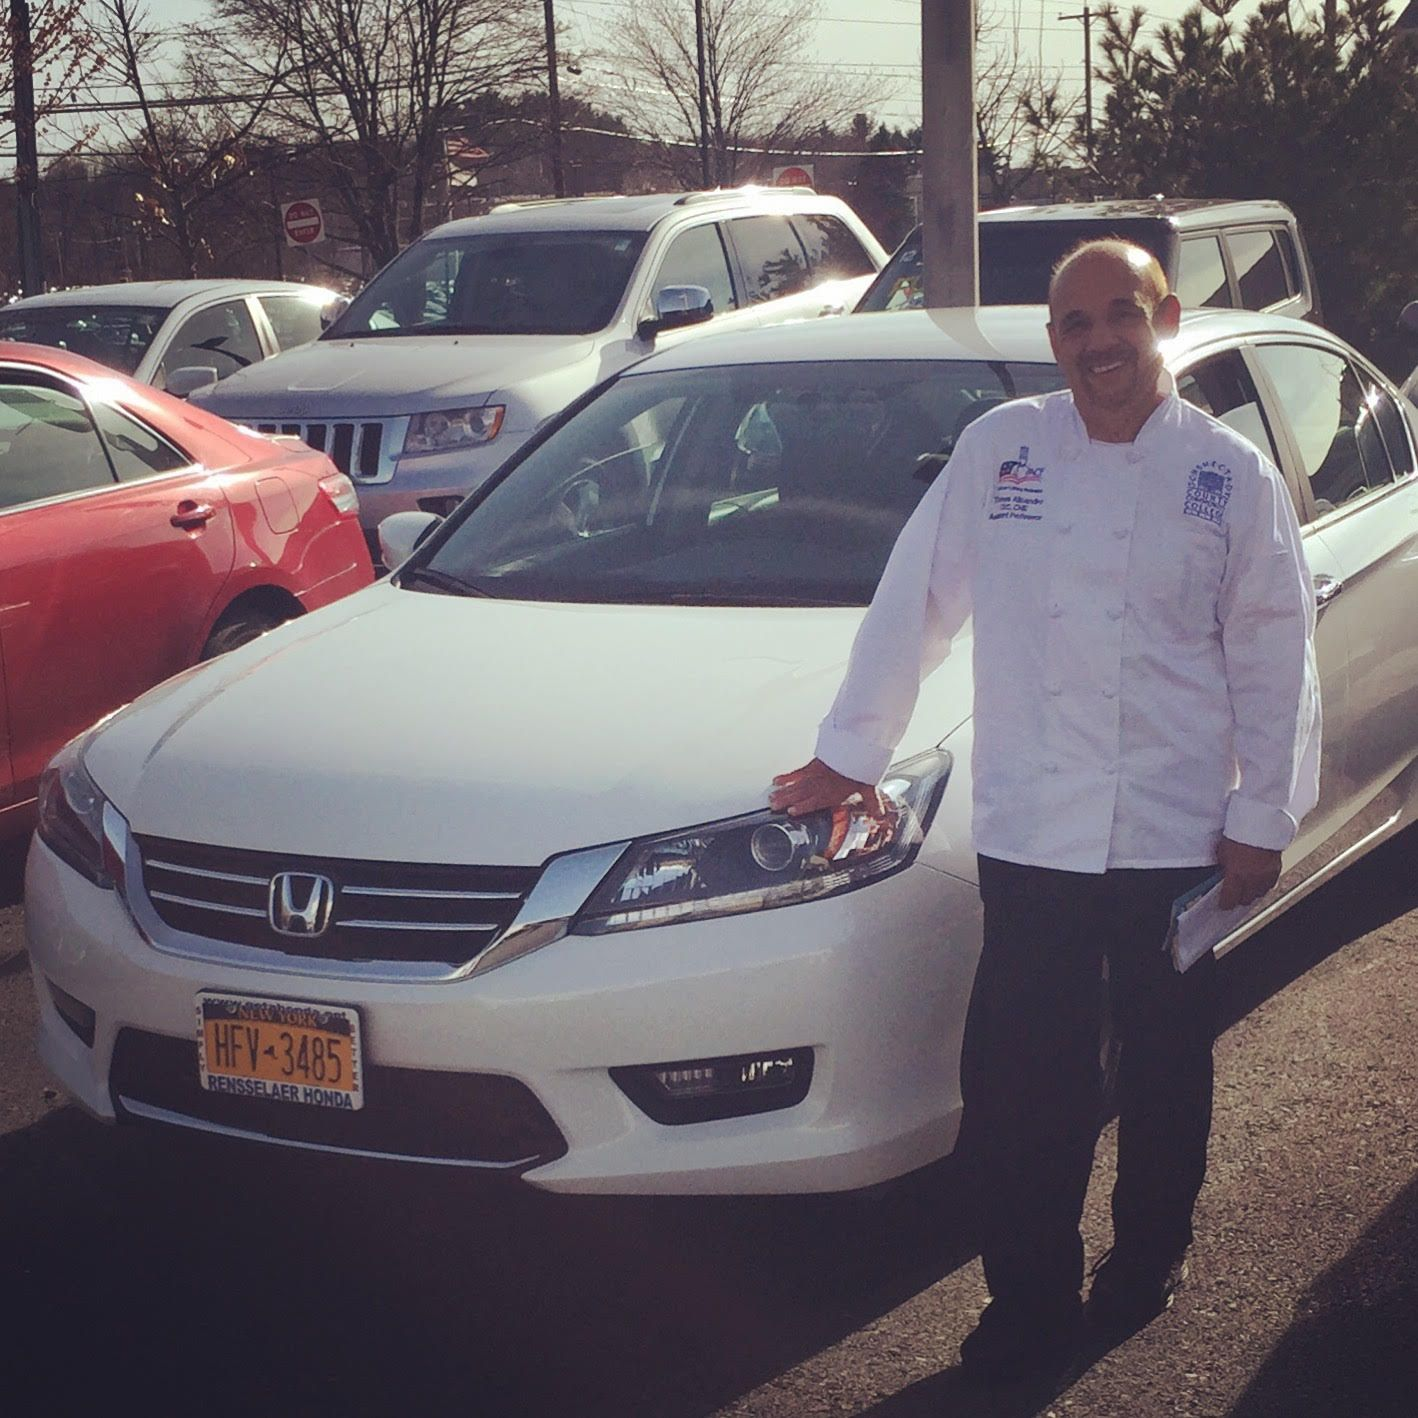 Congratulations to Tom on the new Accord! Cameron was delighted to find the perfect car for you!